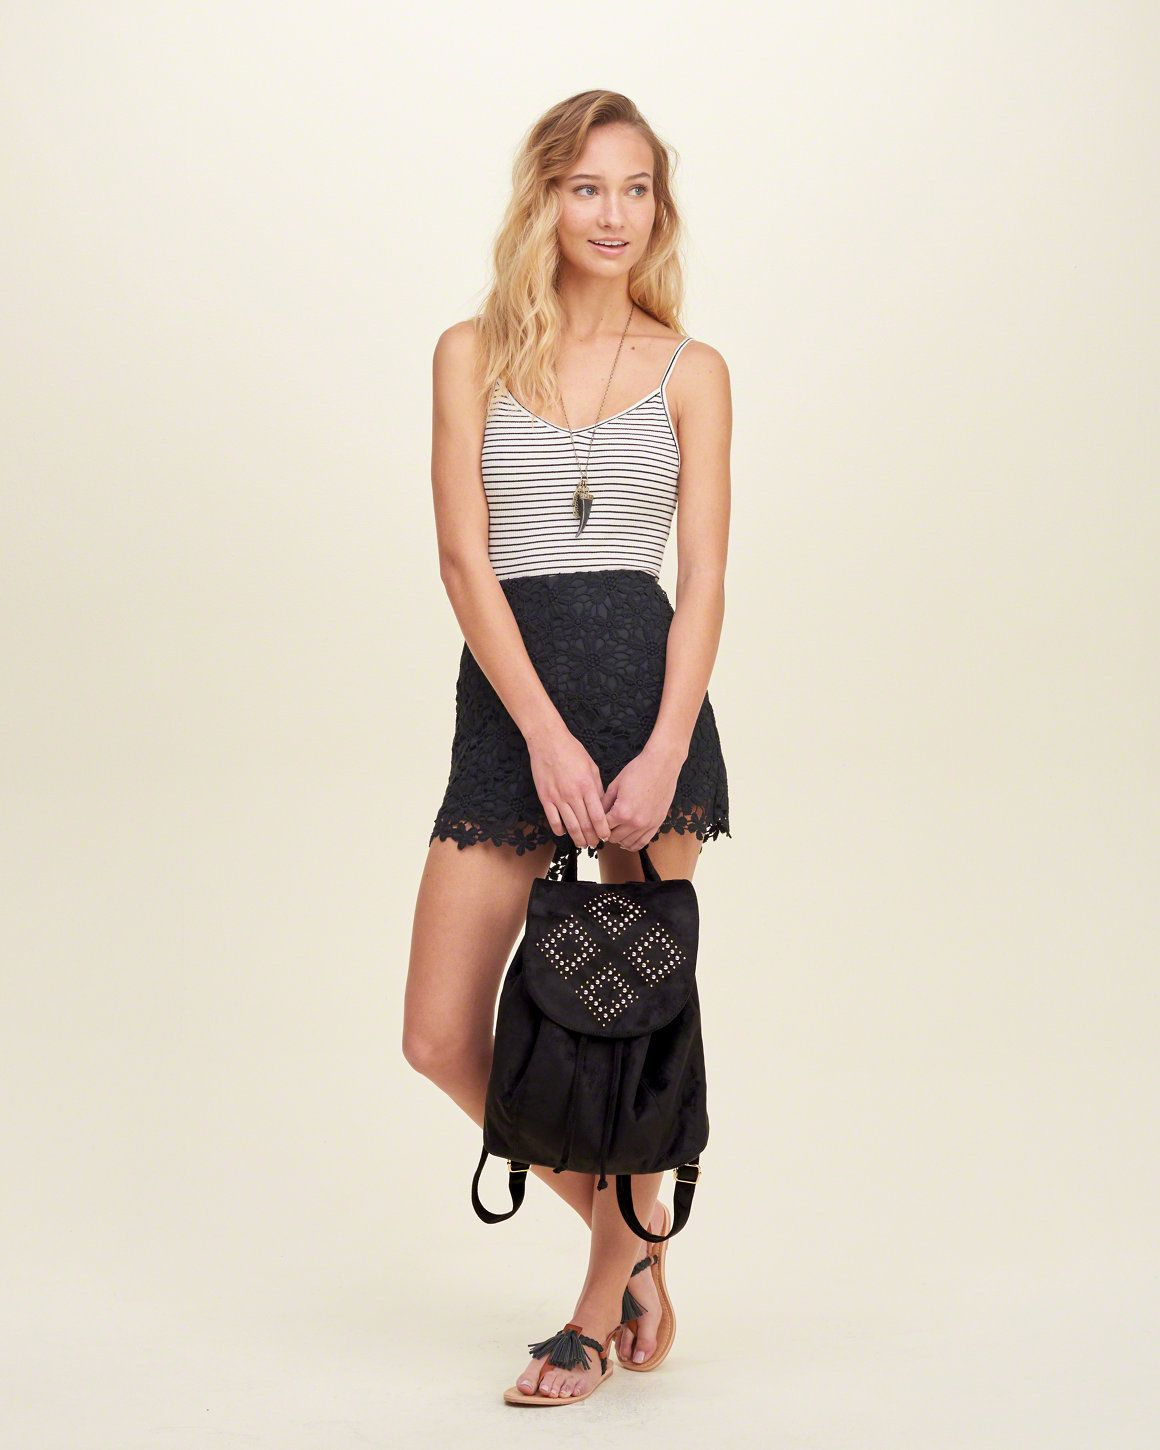 Get ready for any adventure with this edgy carryall, featuring a flap closure, interior drawstring closure, decorative details, adjustable shoulder straps and a handle.